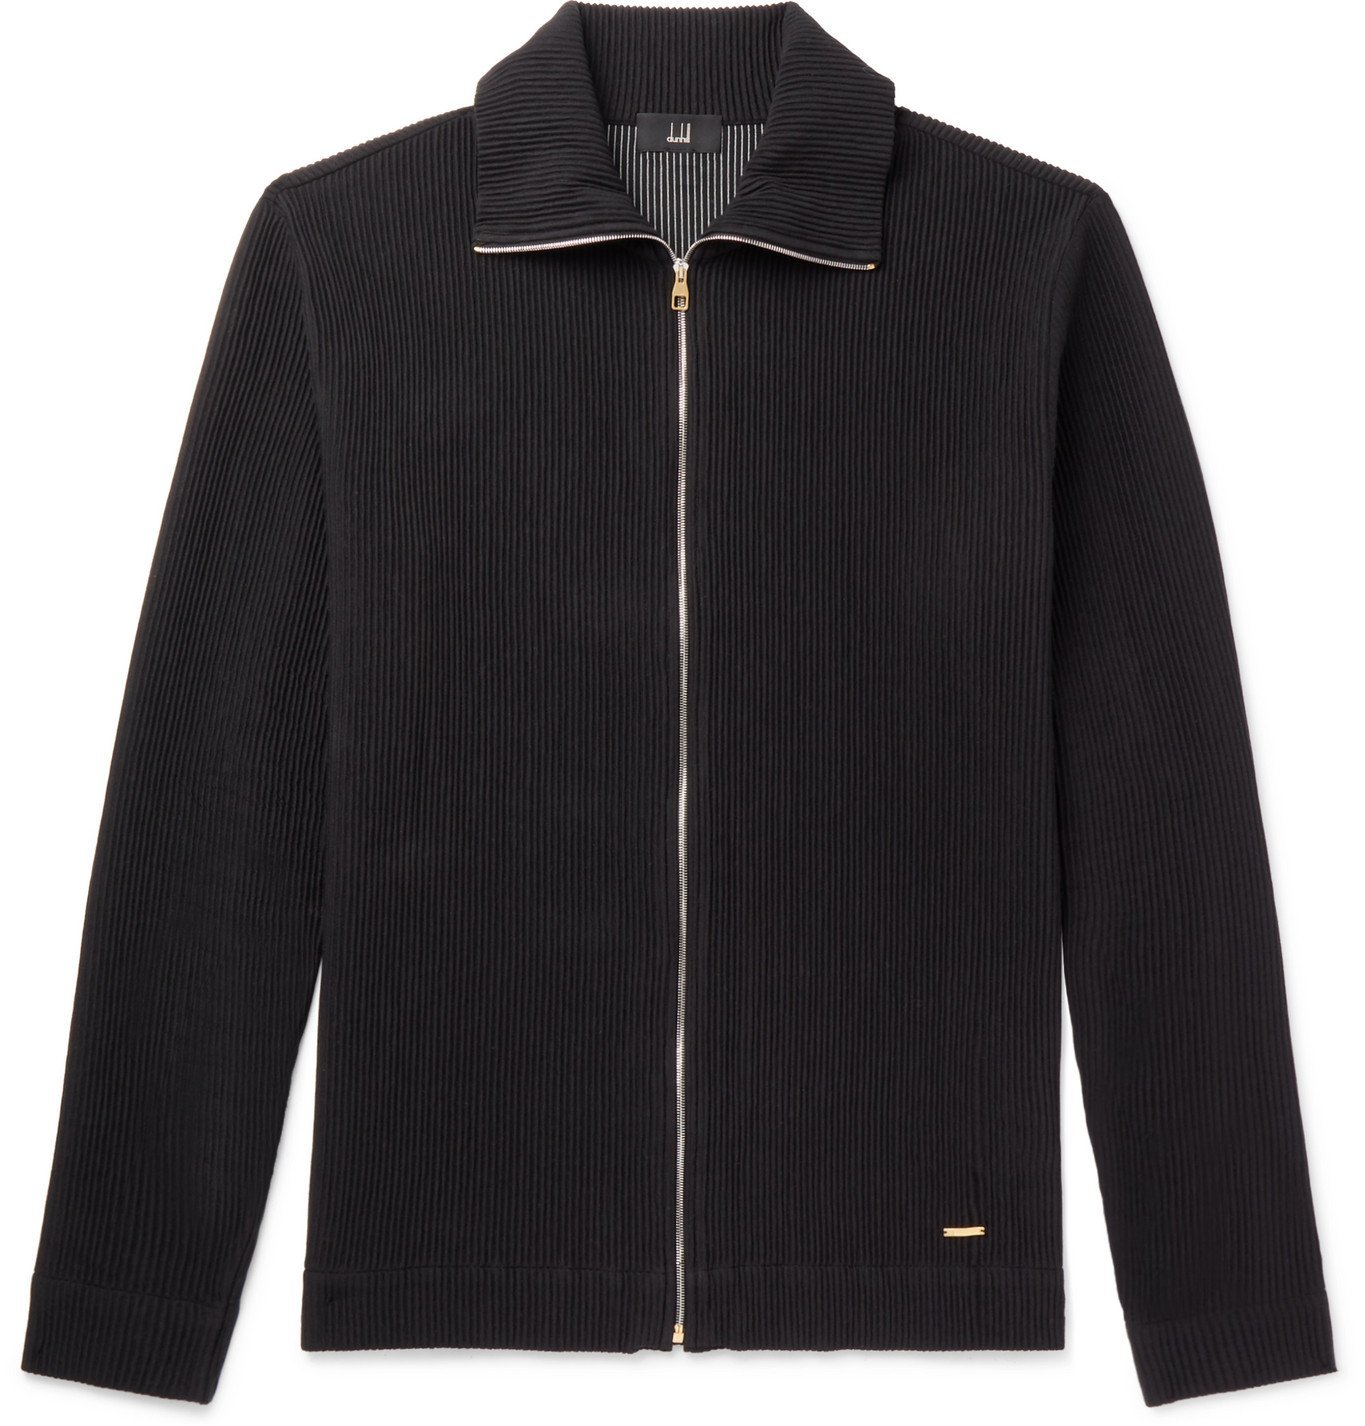 Dunhill - Ribbed Stretch Cotton-Blend Zip-Up Sweater - Black